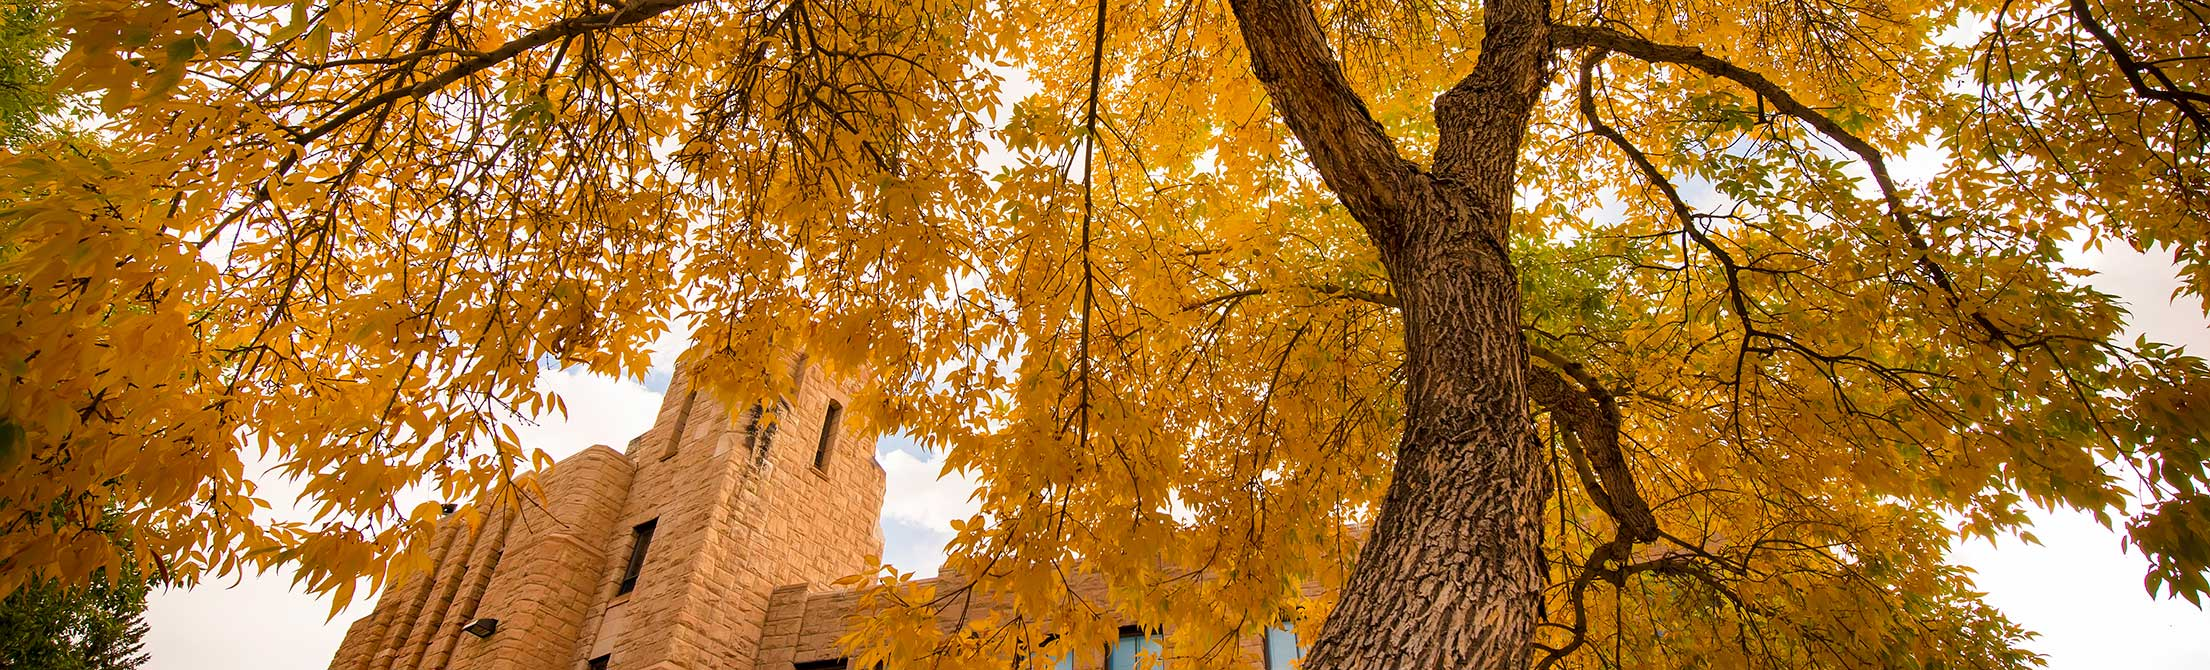 Student Union in the fall, seen from behind trees with gold leaves